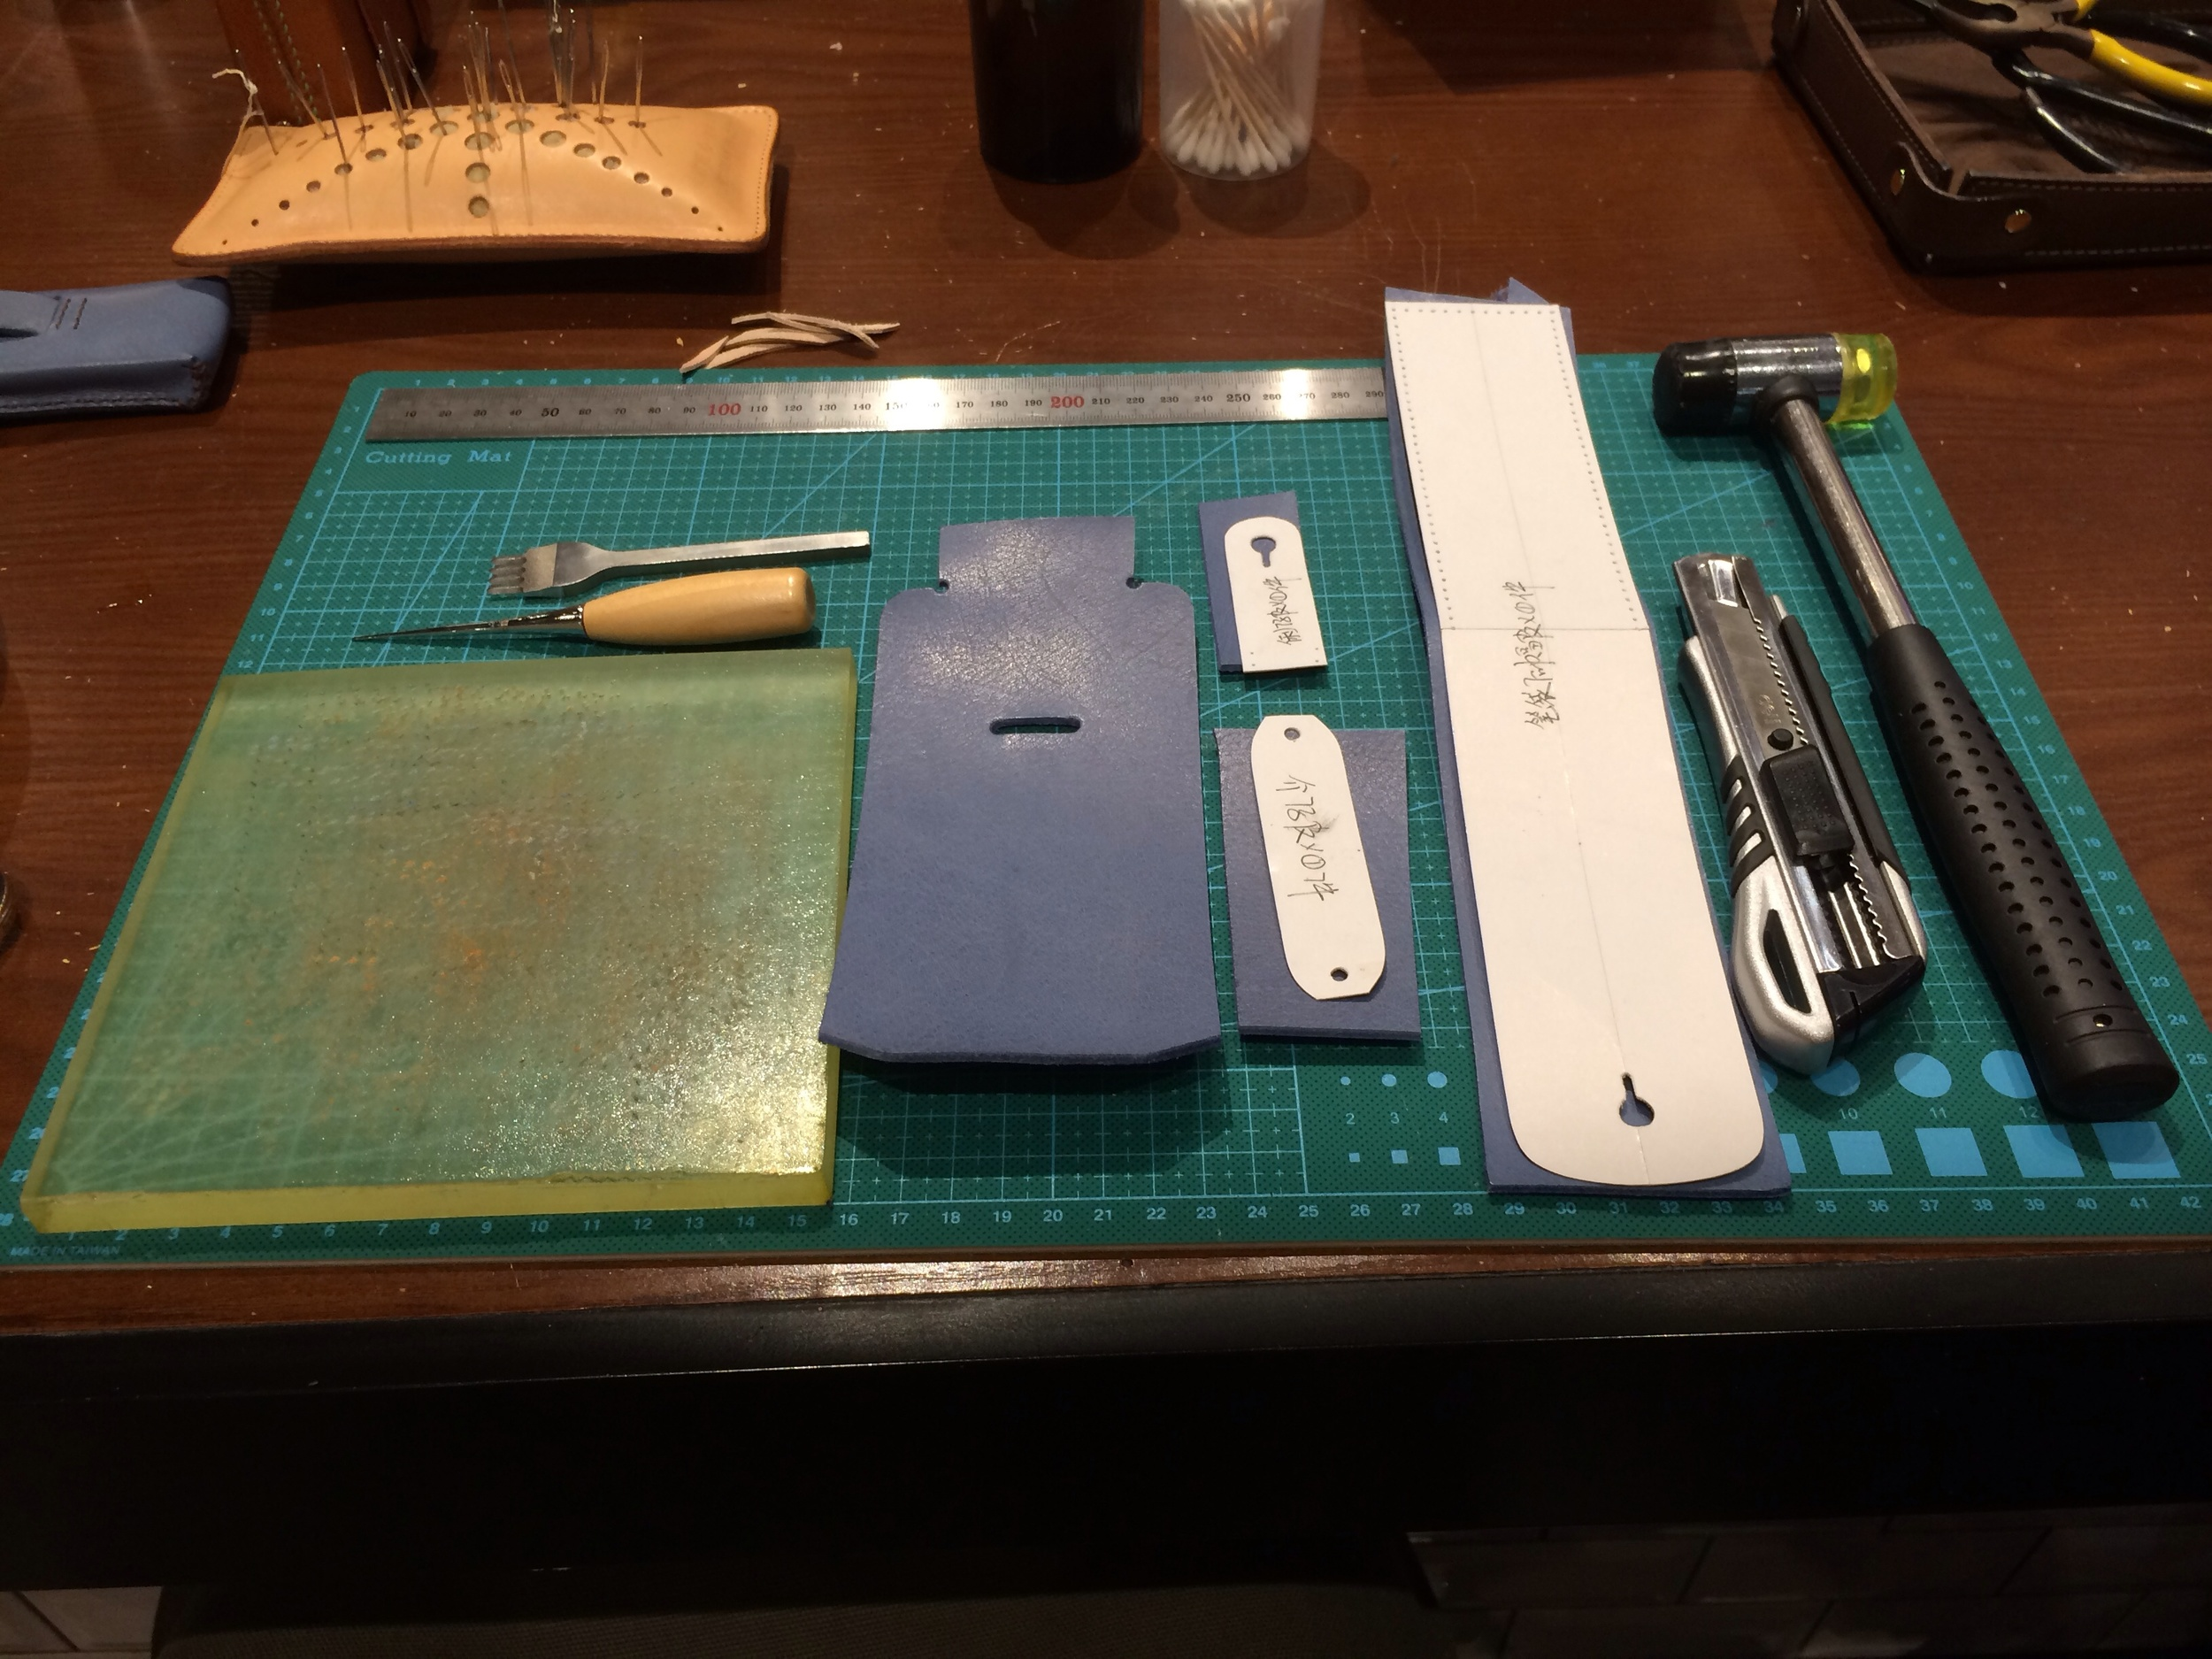 The tools required are laid out. Leather piece on far left is pre-cut and the other 3 pieces require cutting based on the paper patterns.